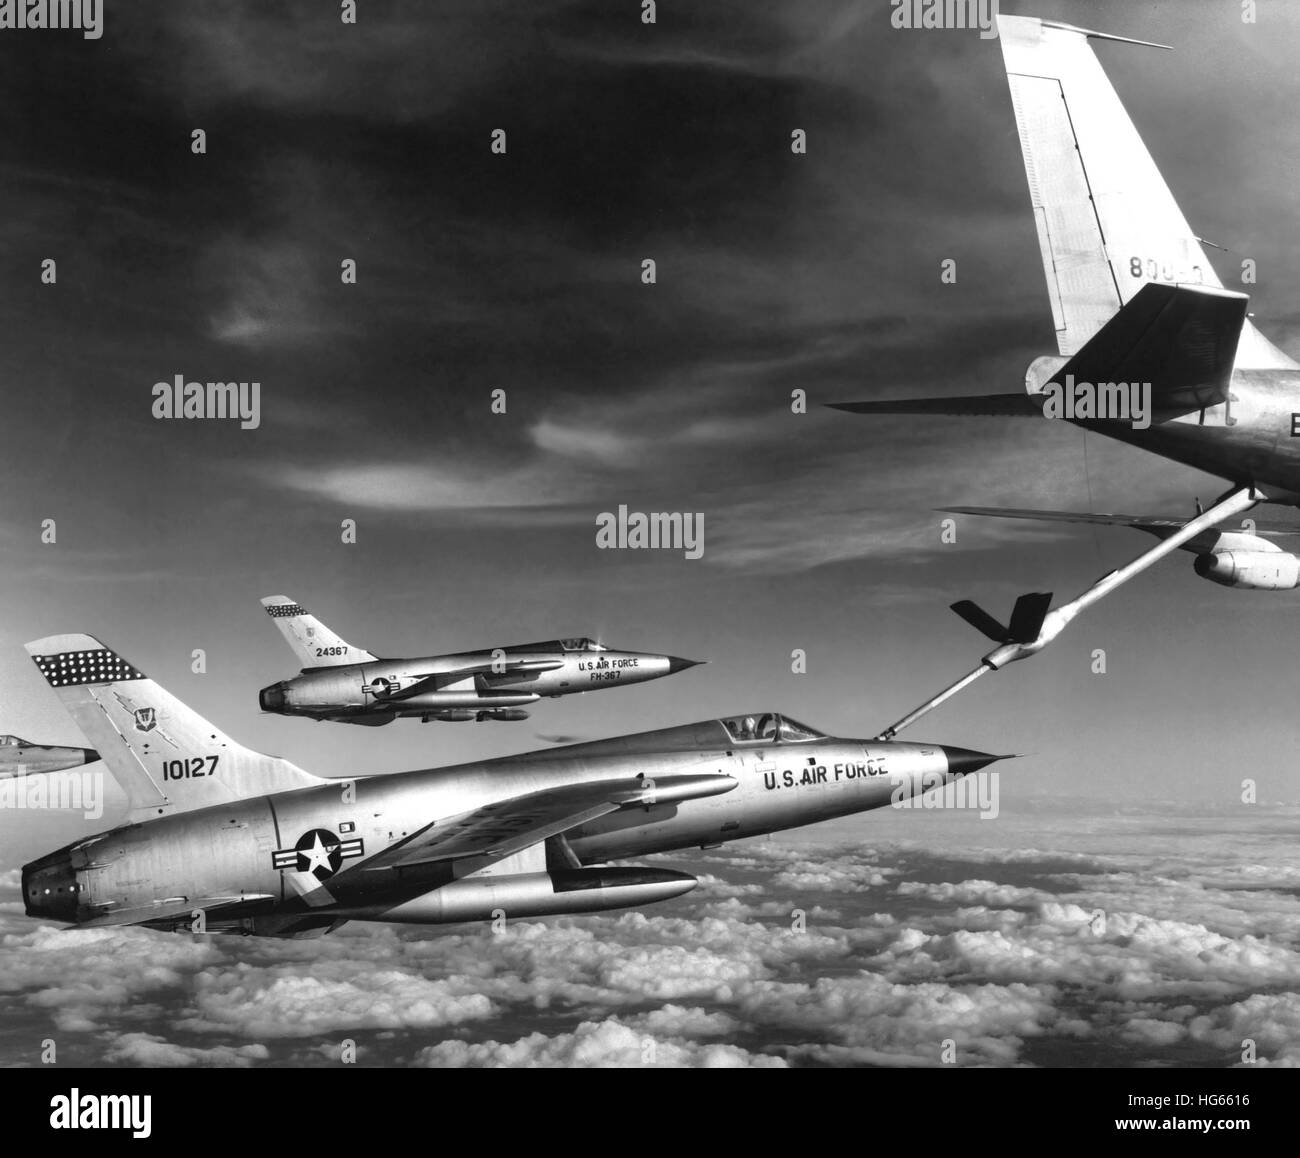 F-105 Thunderchief planes pull up to a KC-135 Stratotanker refueling aircraft, 1966. - Stock Image